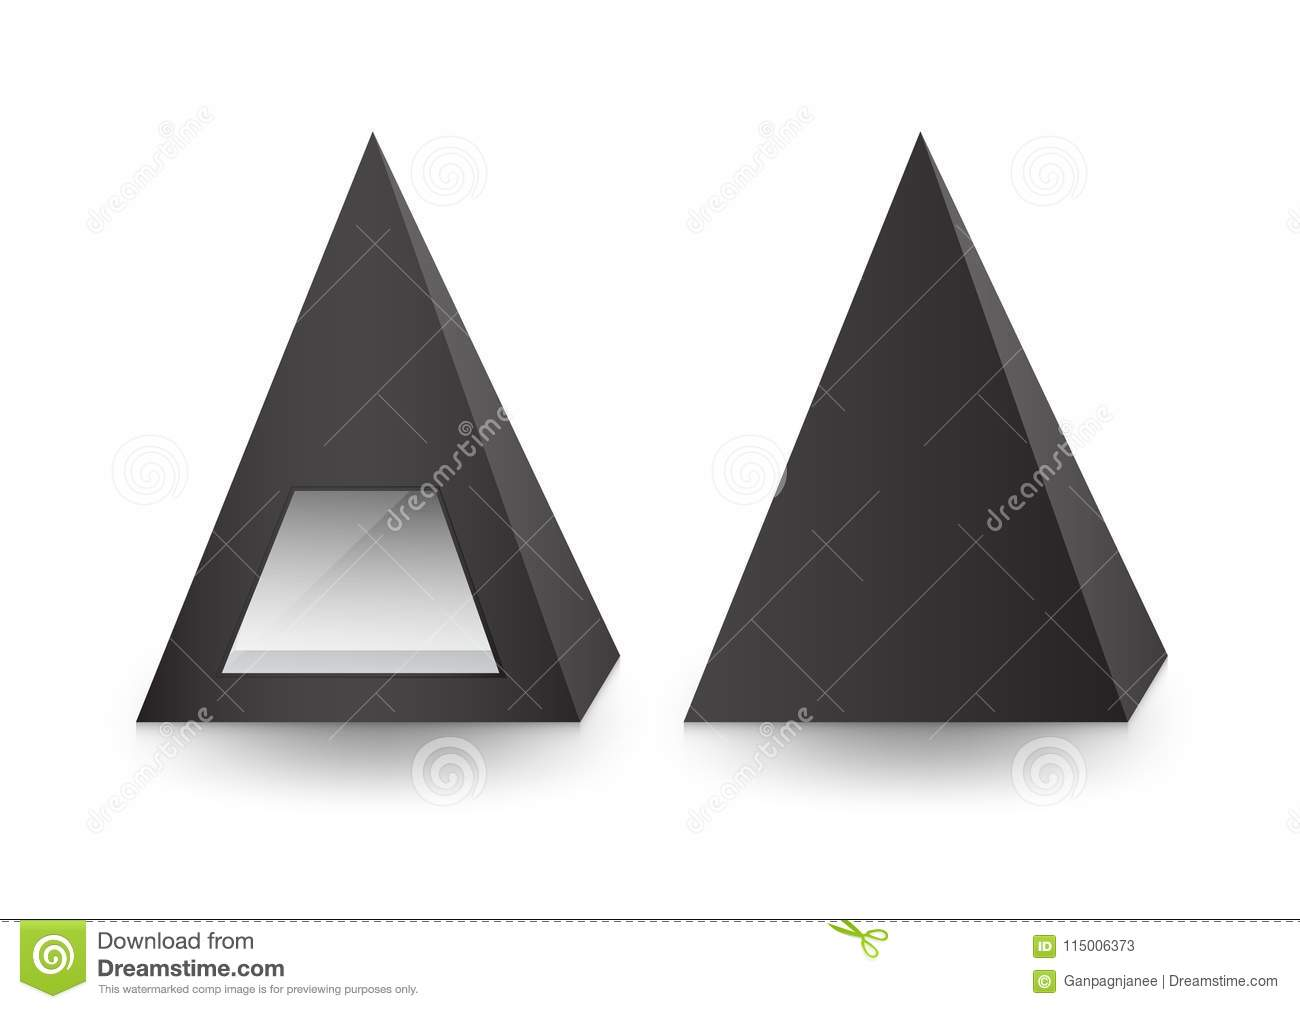 3d Pyramid Package, Box, Product Design,Vector Illustration. Stock ...